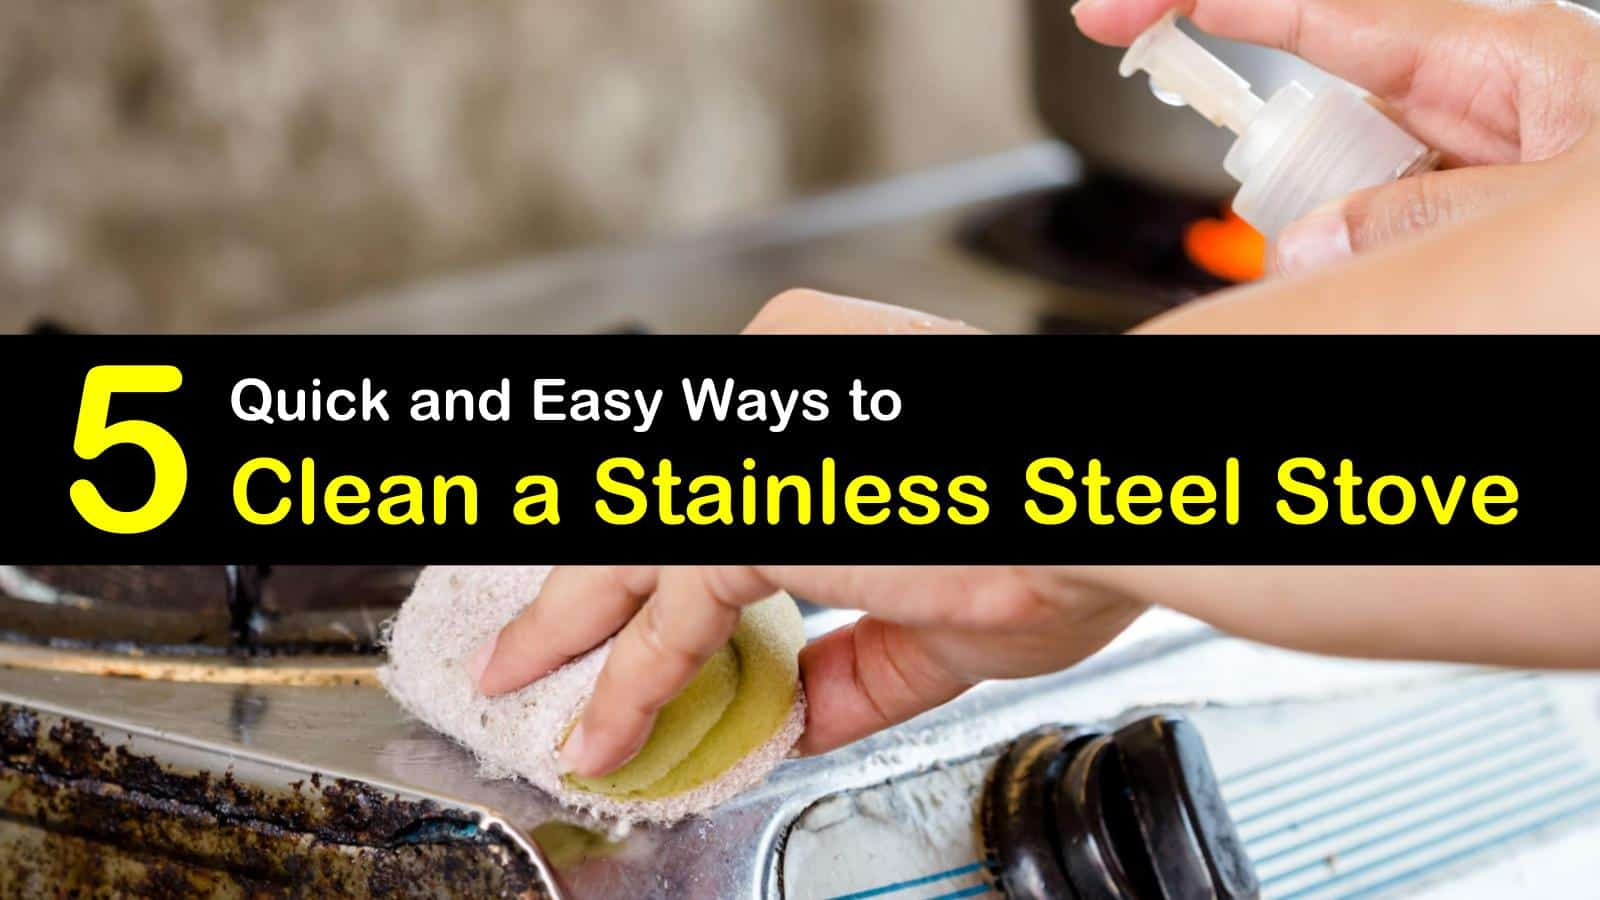 how to clean a stainless steel stove titleimg1